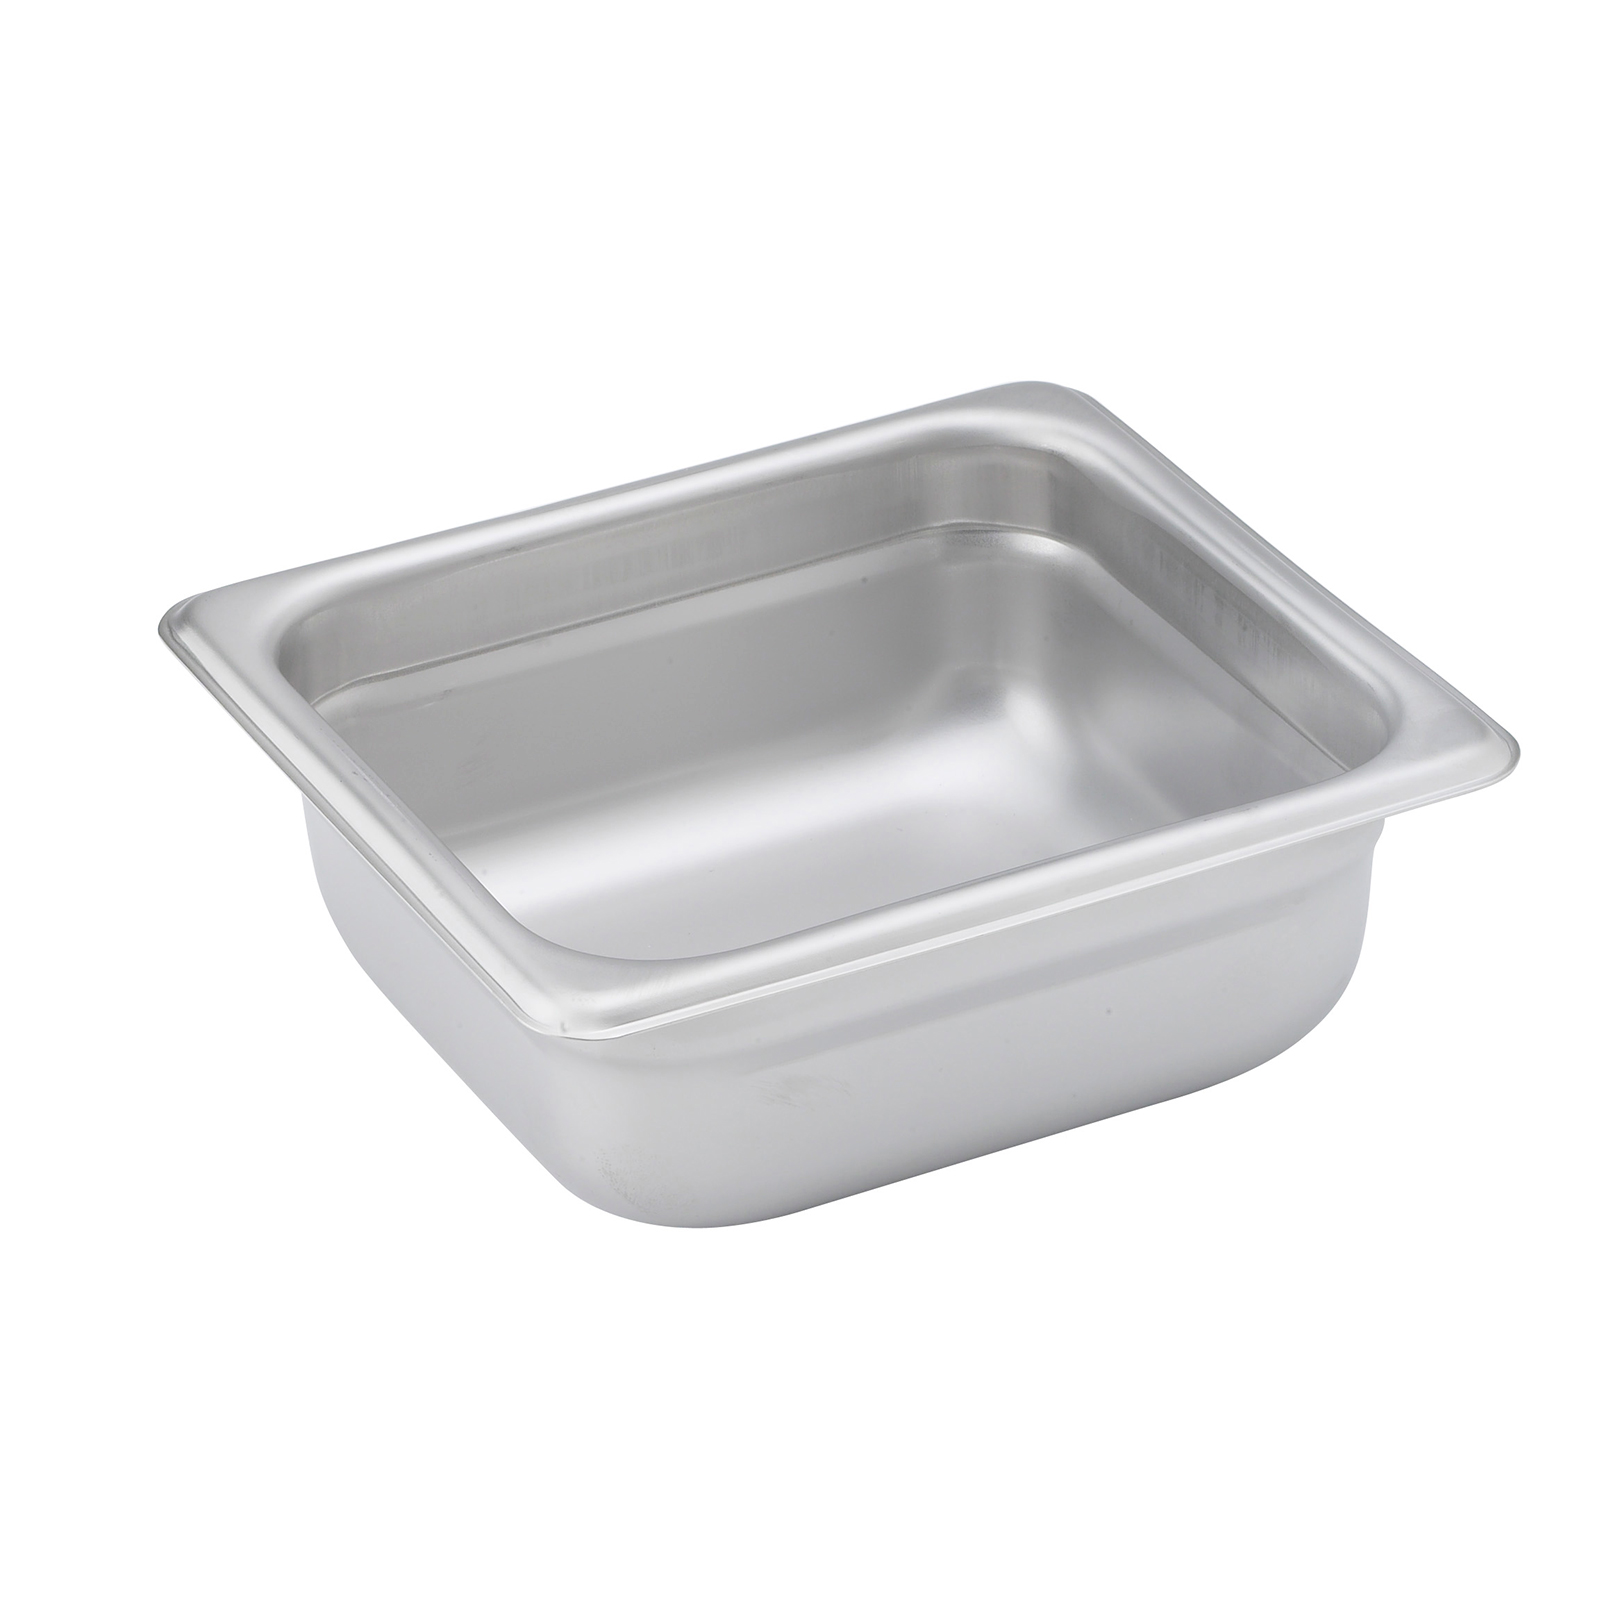 Winco SPJH-602 steam table pan, stainless steel